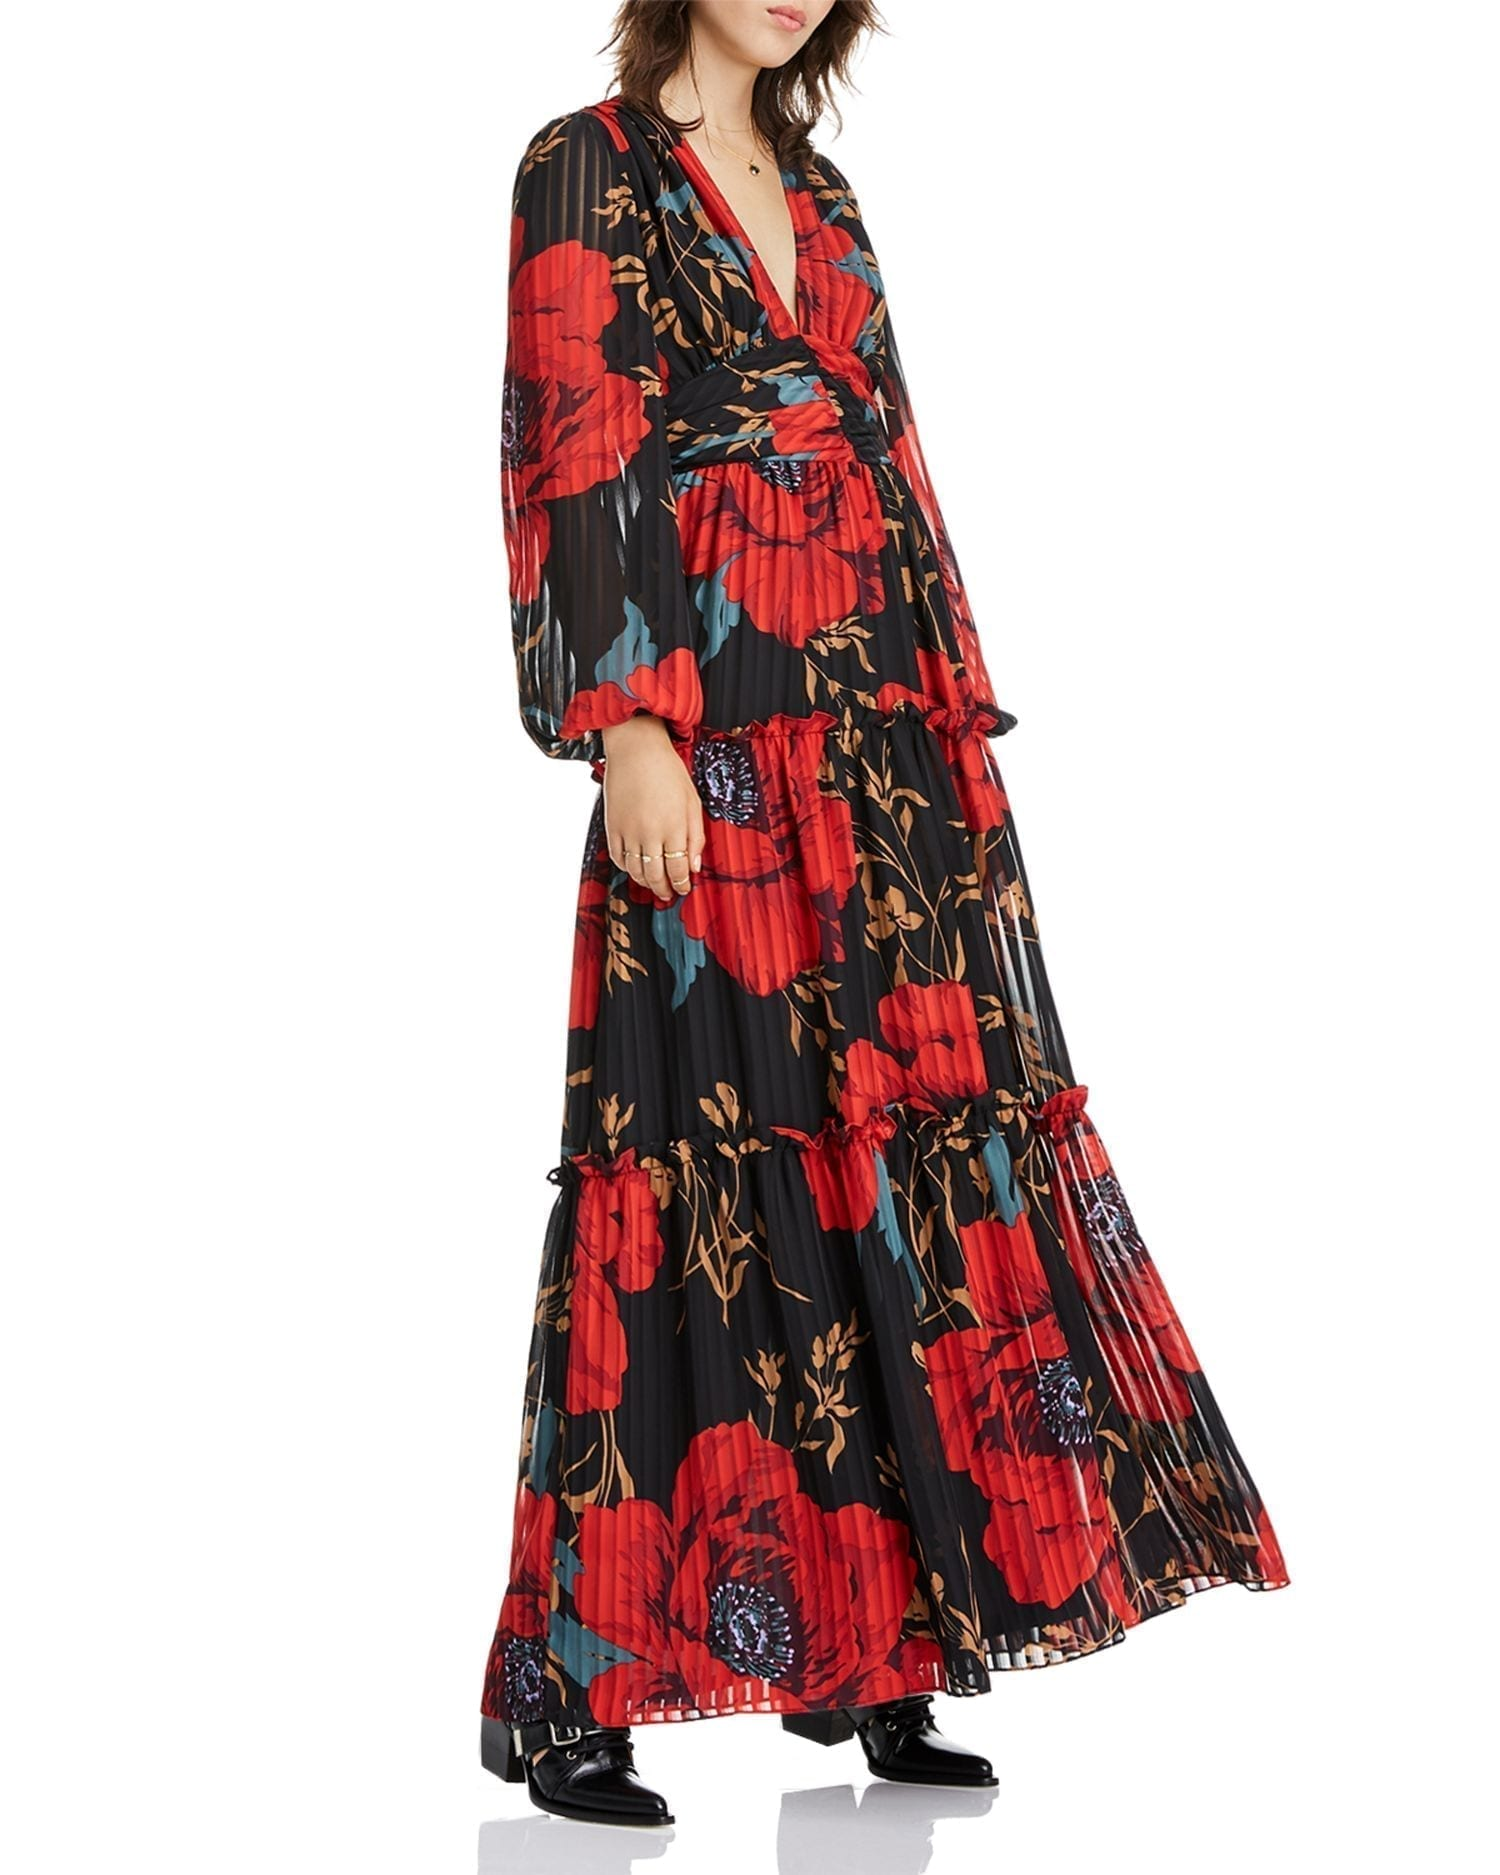 LINI Kristin Tiered Floral Maxi Dress